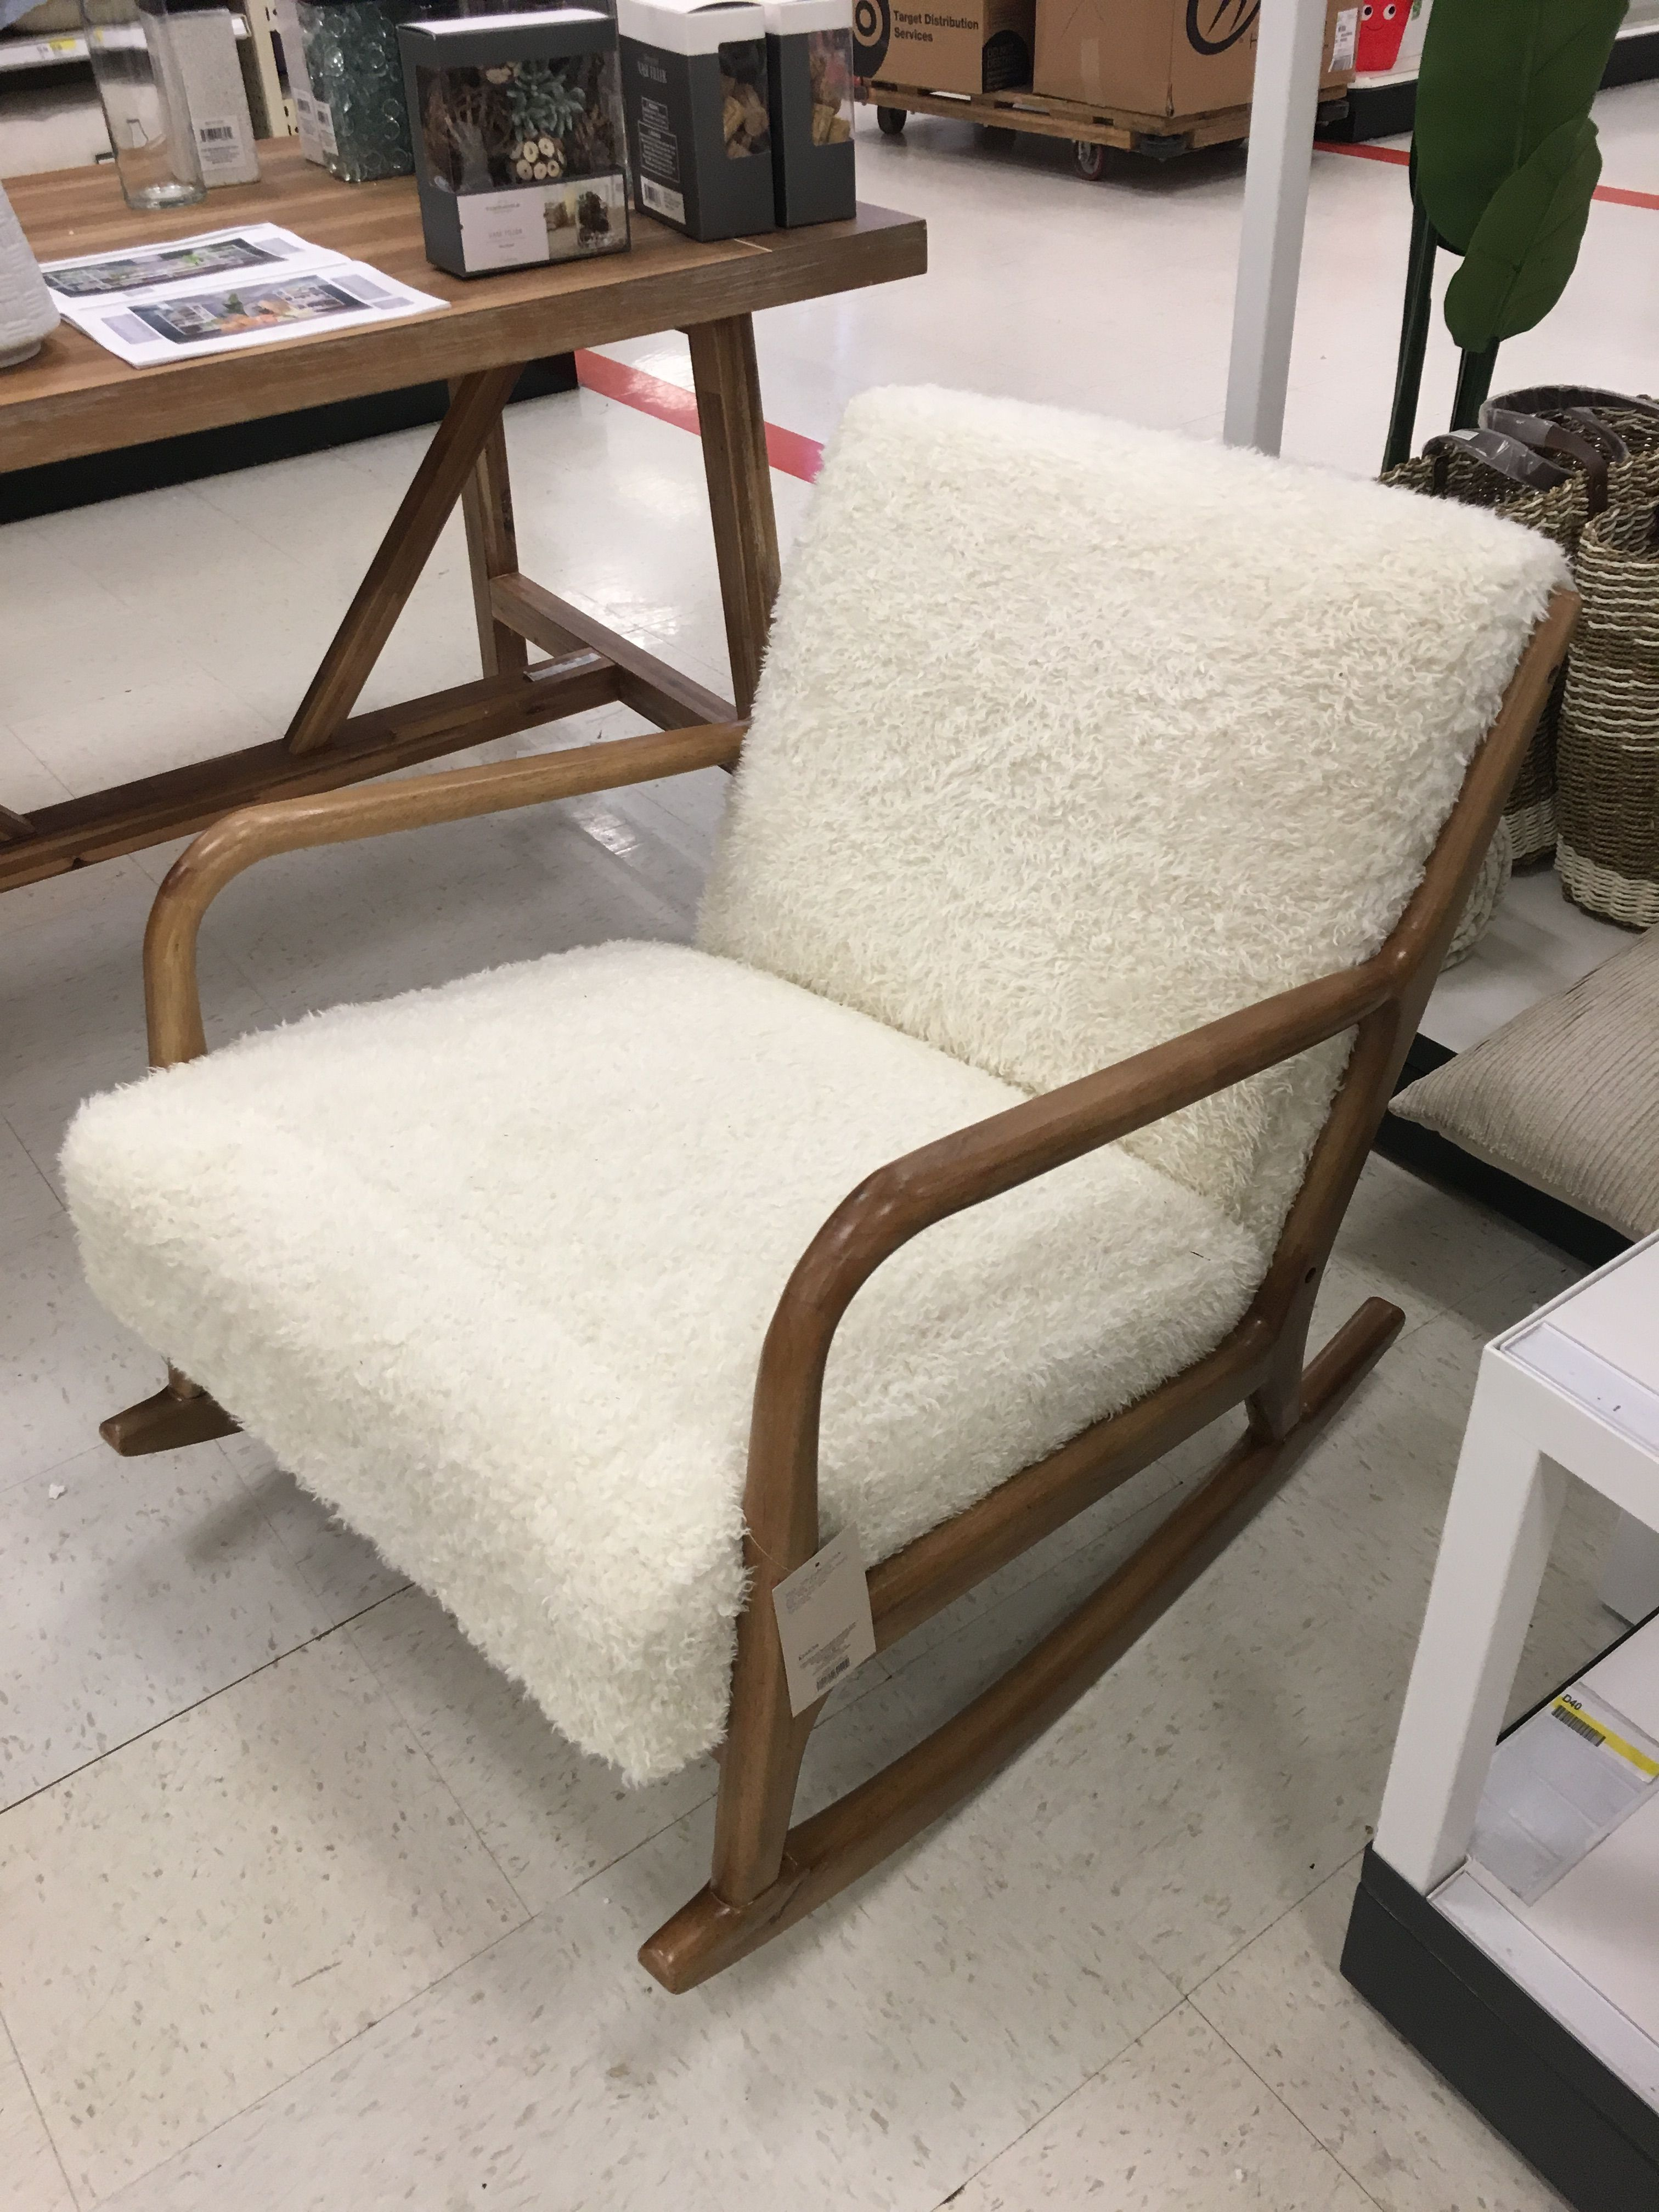 Tremendous Project 62 Esters Sherpa Rocking Chair Evergreenethics Interior Chair Design Evergreenethicsorg